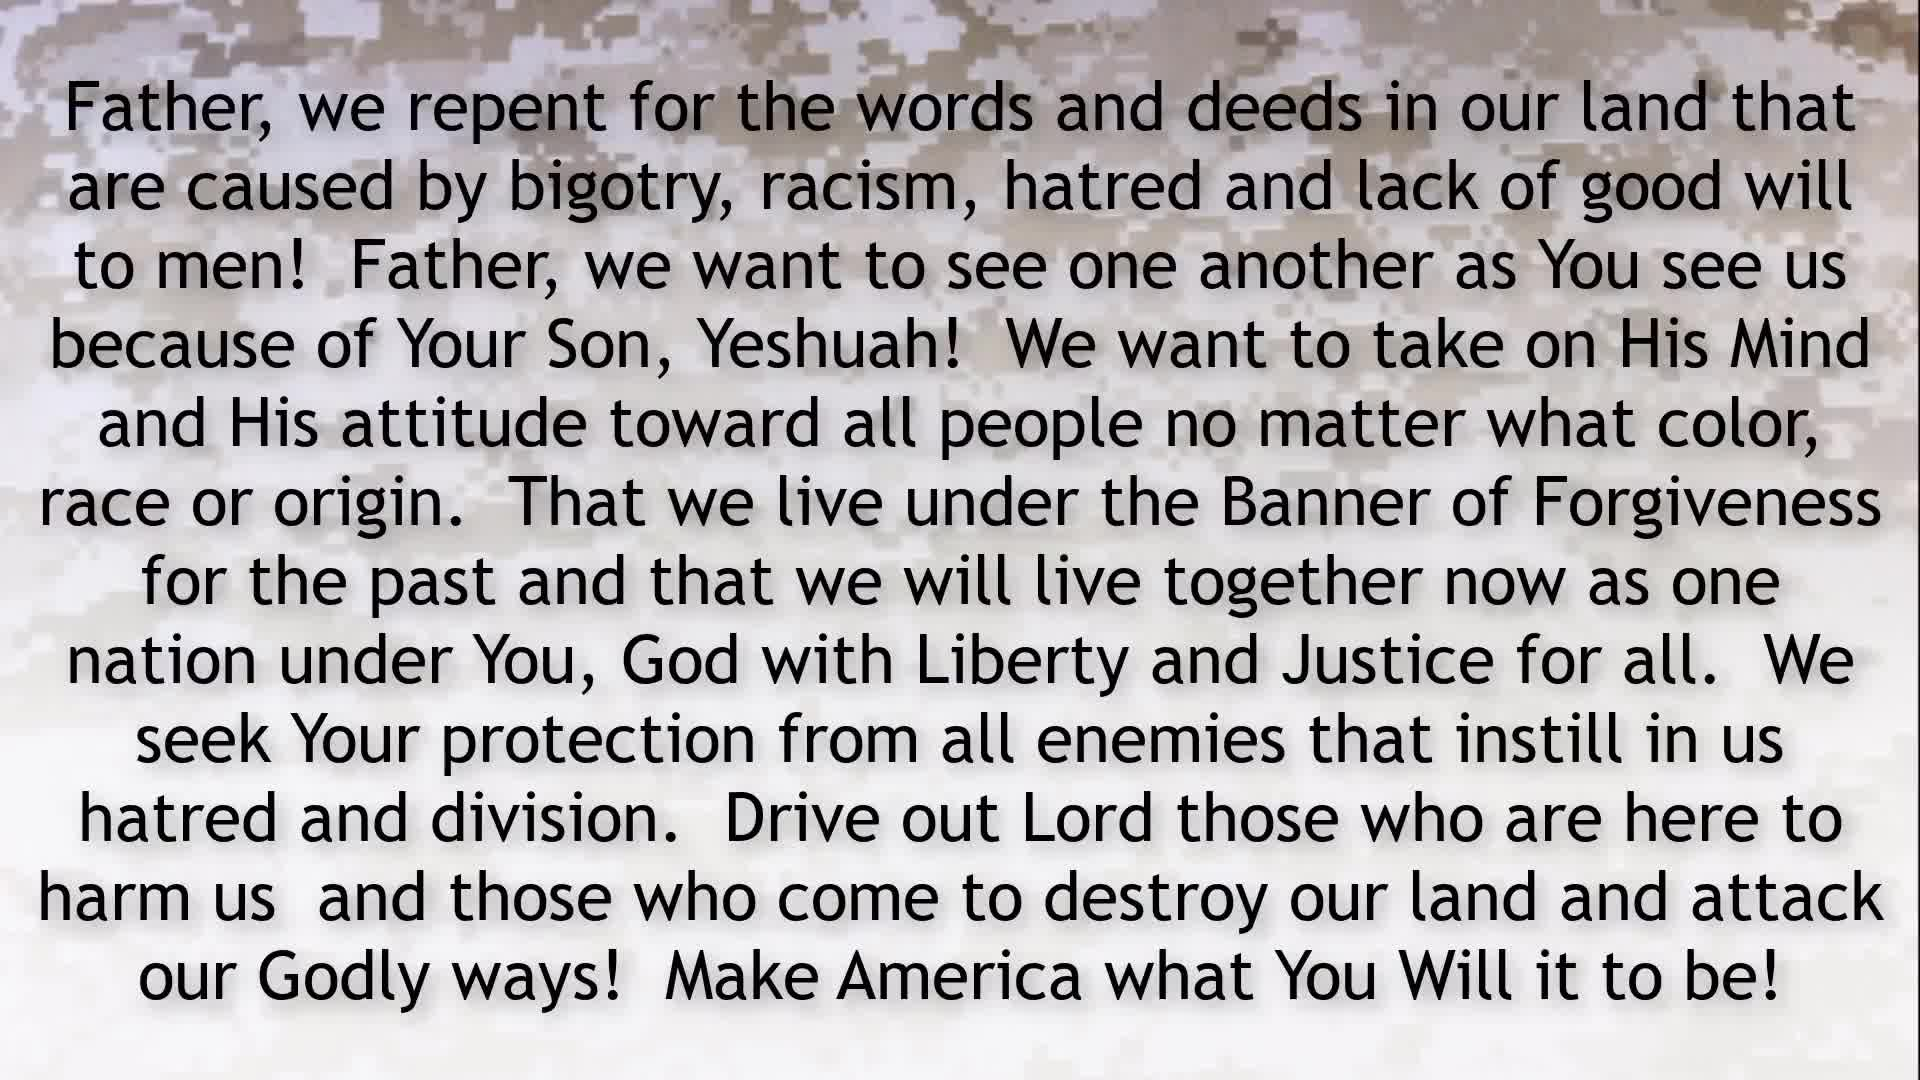 PRAYER FOCUS REPENT TO CLEANSE THE TEMPLE OF AMERICA!